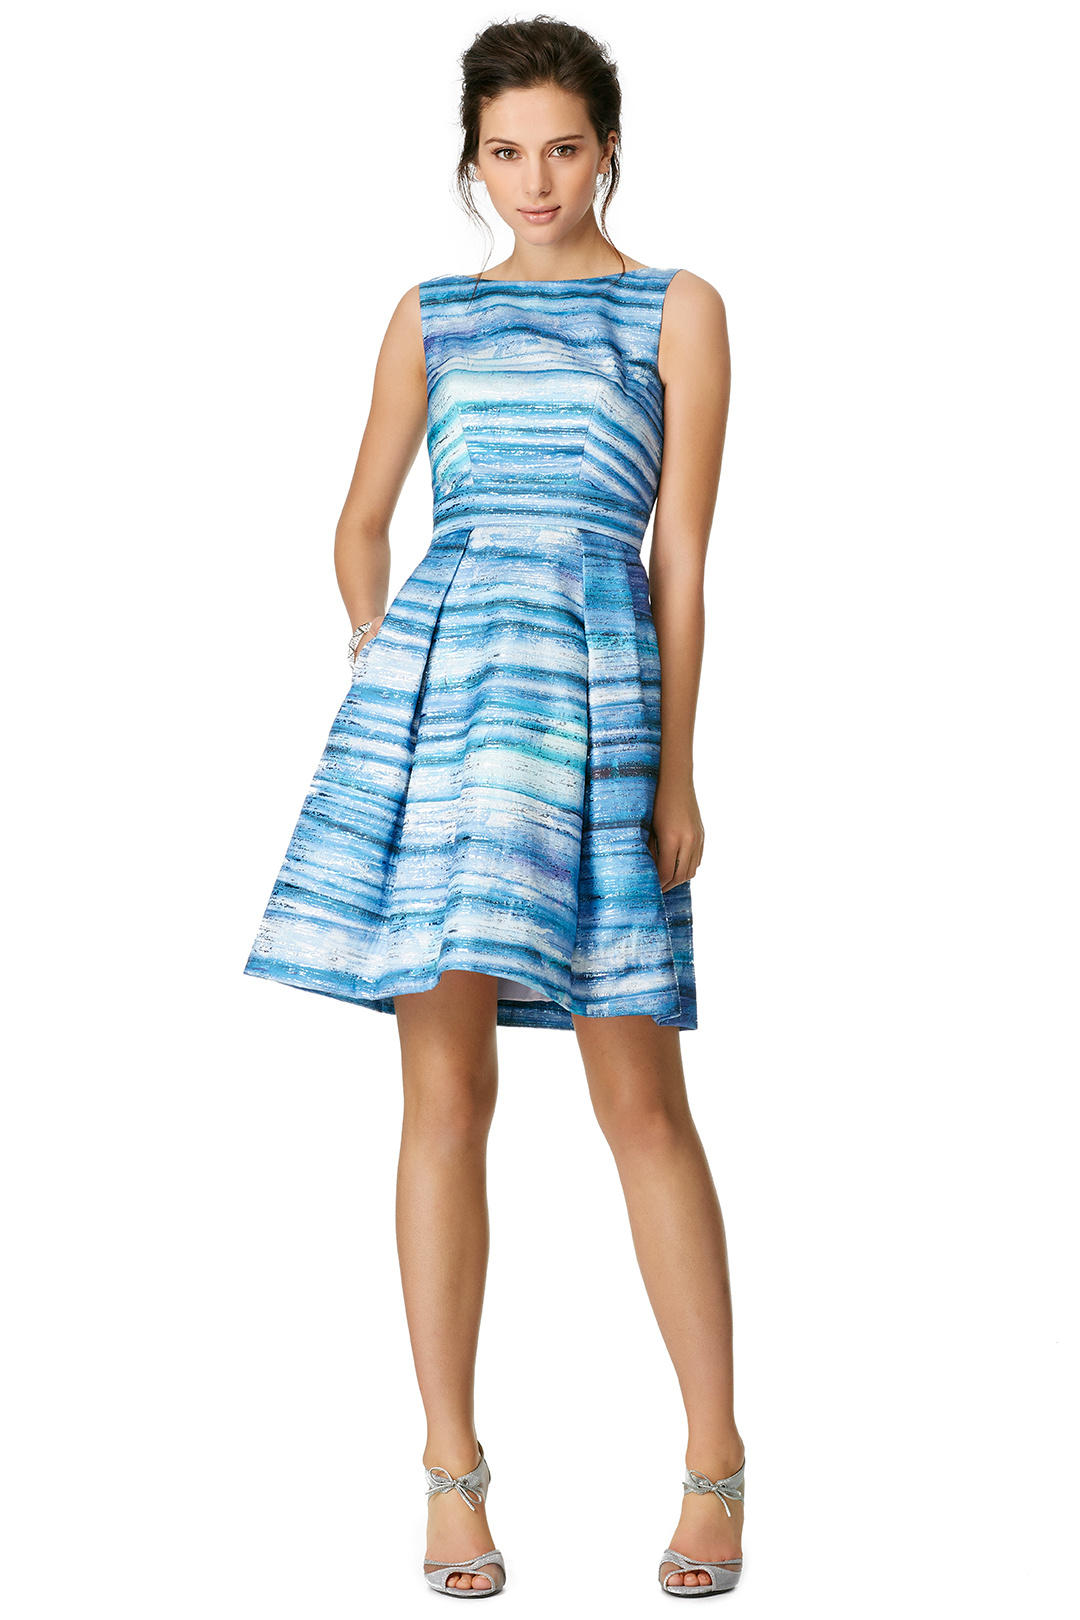 Theia blue gradient dress from rent the runway miami for Rental wedding dresses in miami